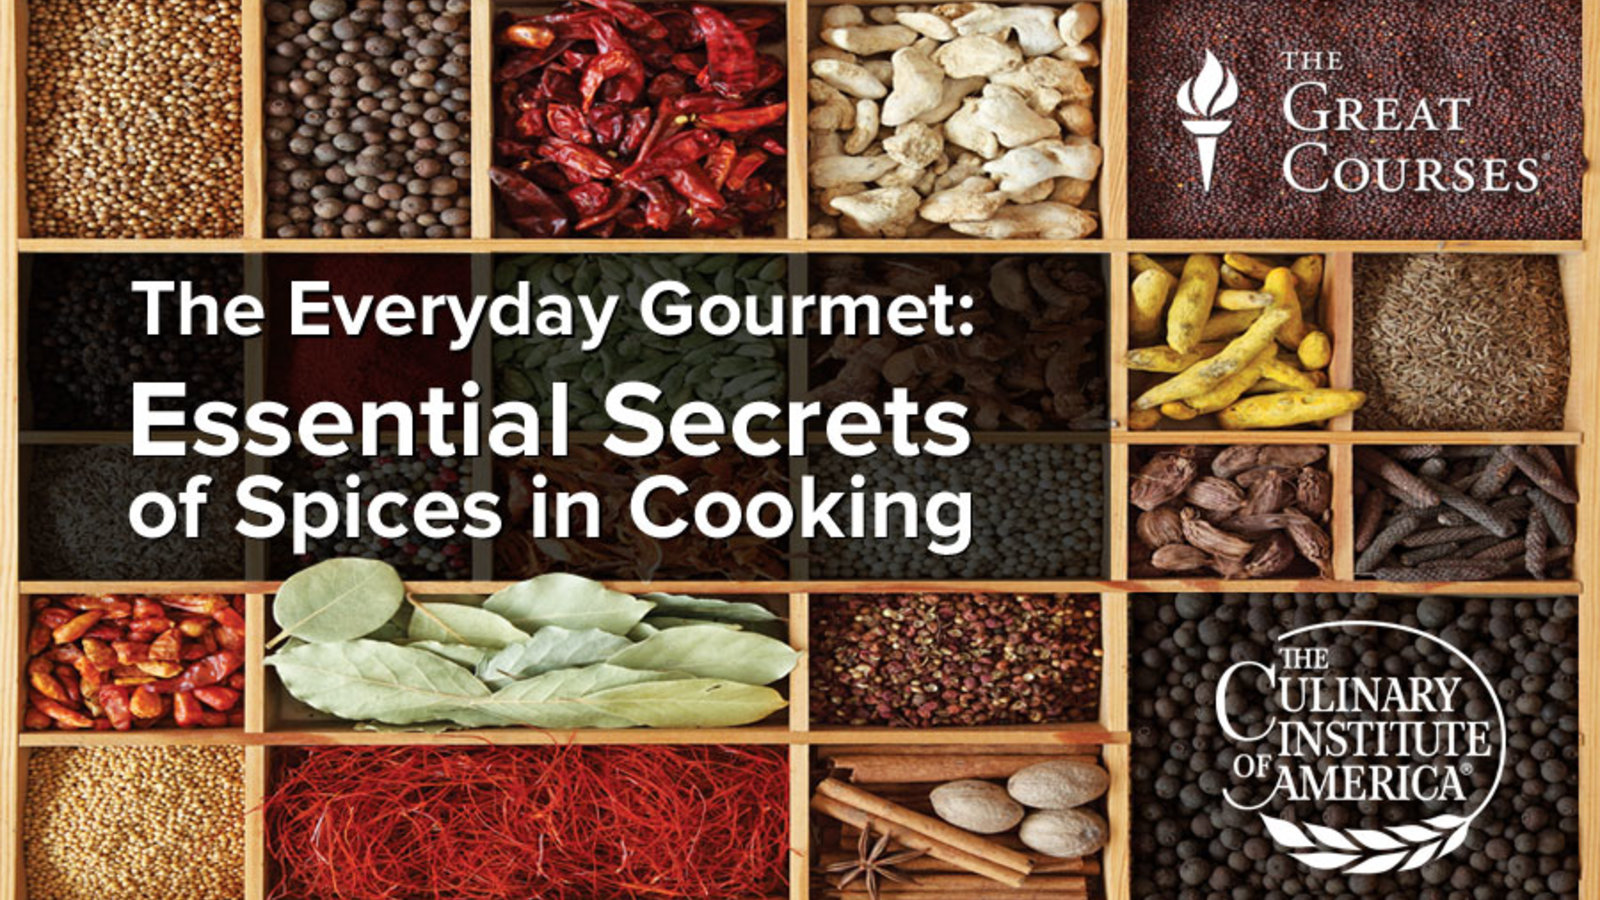 The Everyday Gourmet: Essential Secrets of Spices in Cooking